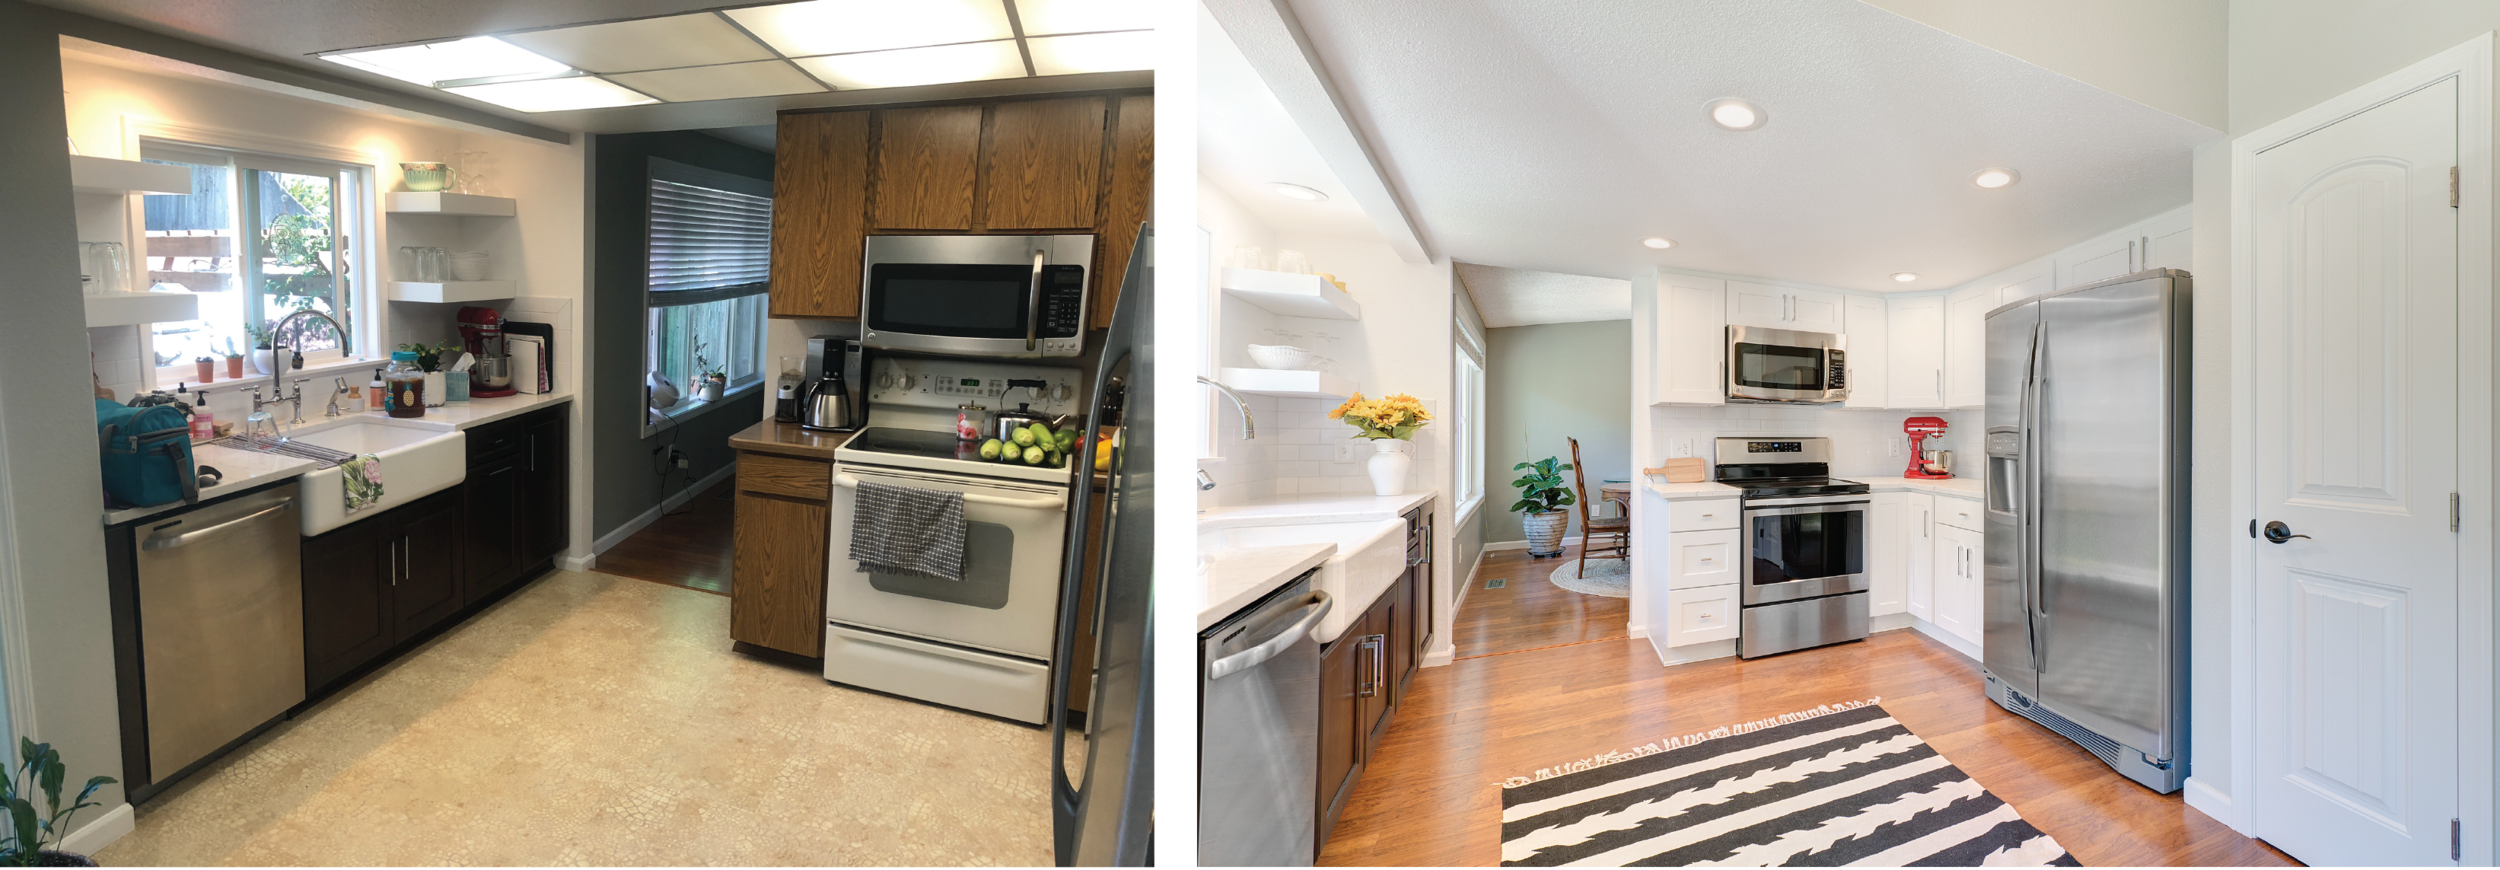 ARC+Before+and+Afters+Staging+Blog+PostAR-01.png